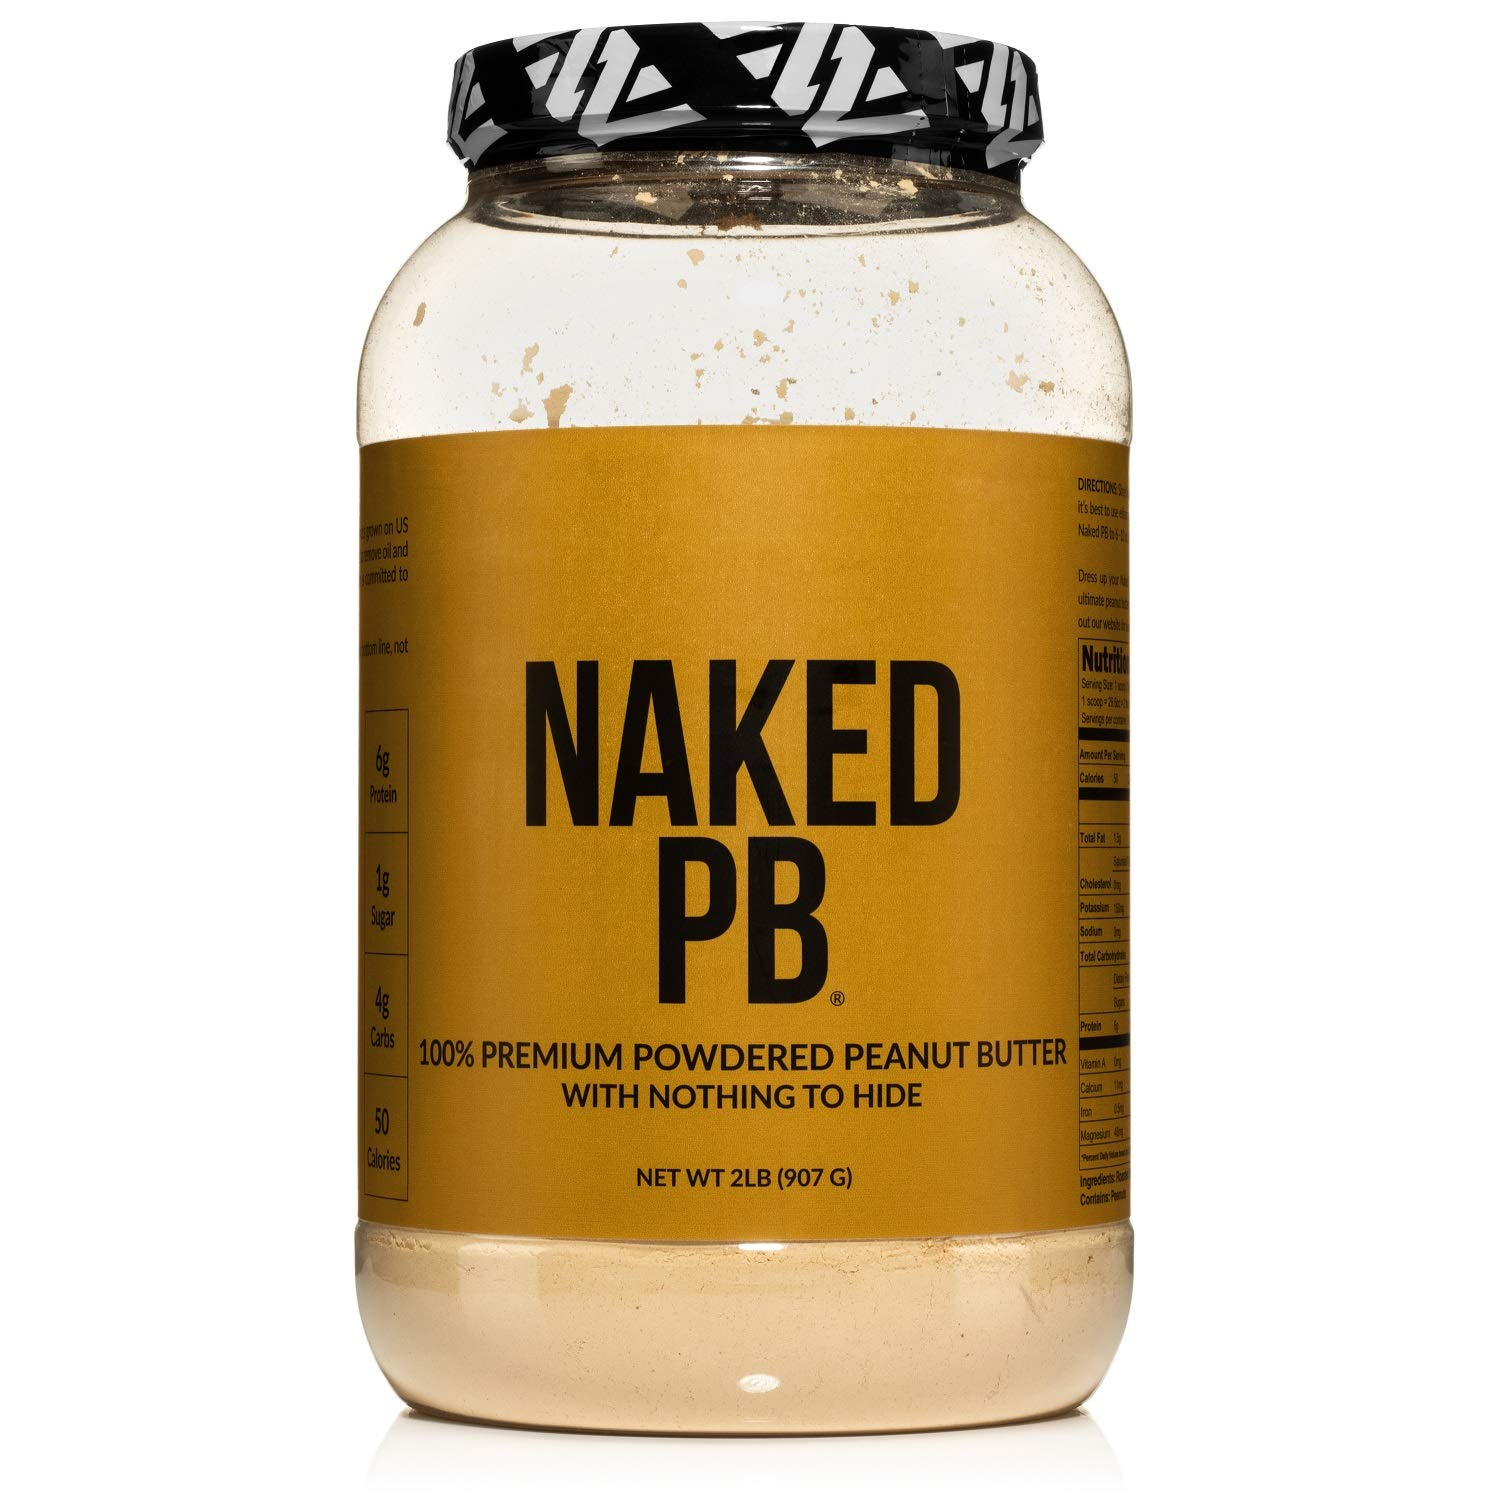 2lbs of 100% Premium Powdered Peanut Butter from US Farms – Bulk, Only Roasted Peanuts, Vegan, No Additives, Preservative Free, No Salt, No Sugar - 76 Servings - Naked PB